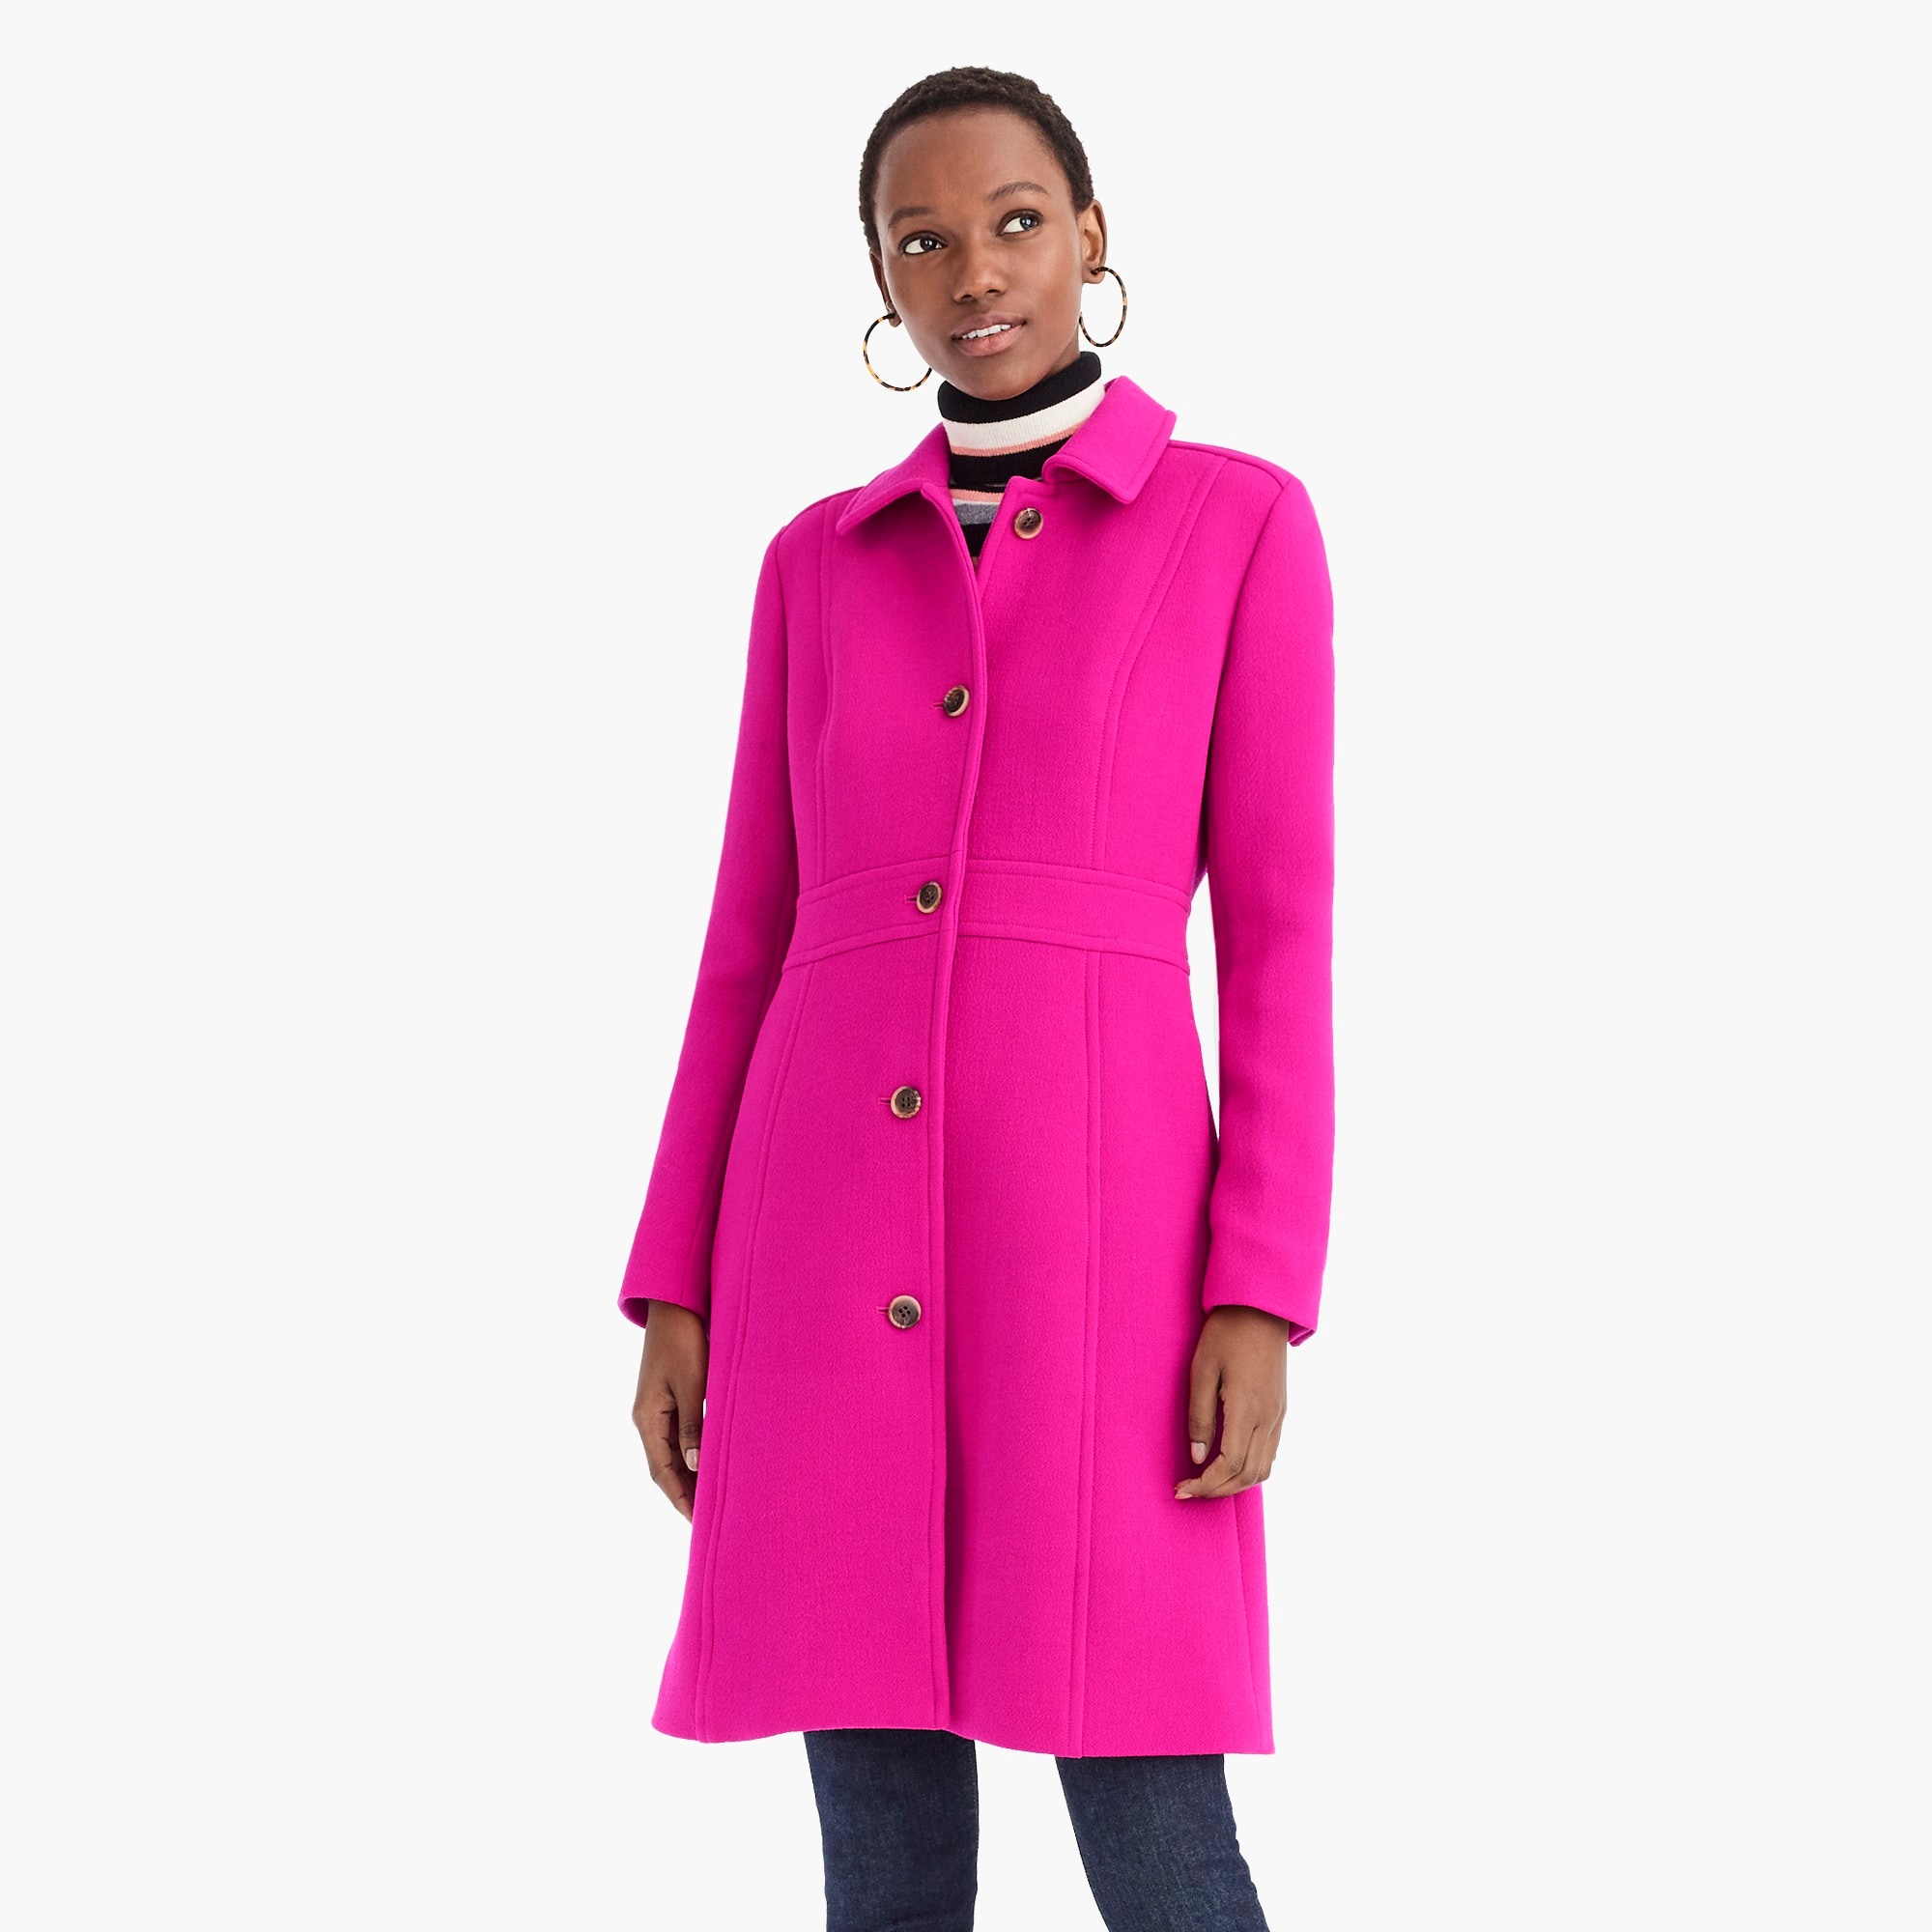 Image 4 for Tall Italian double-cloth wool lady day coat with Thinsulate®